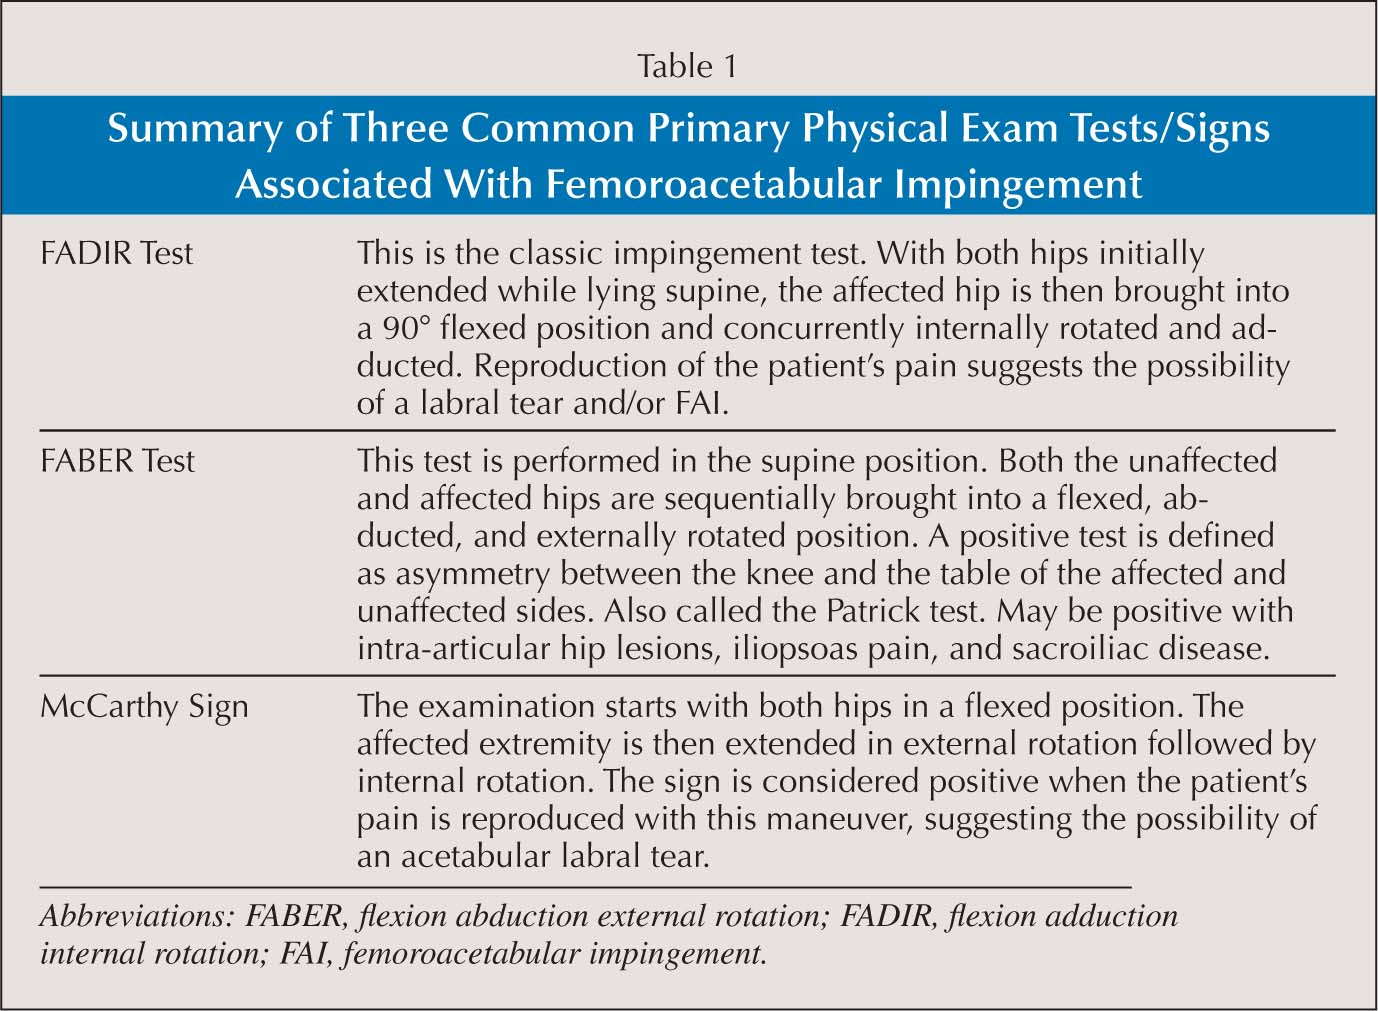 Summary of Three Common Primary Physical Exam Tests/Signs Associated with Femoroacetabular Impingement